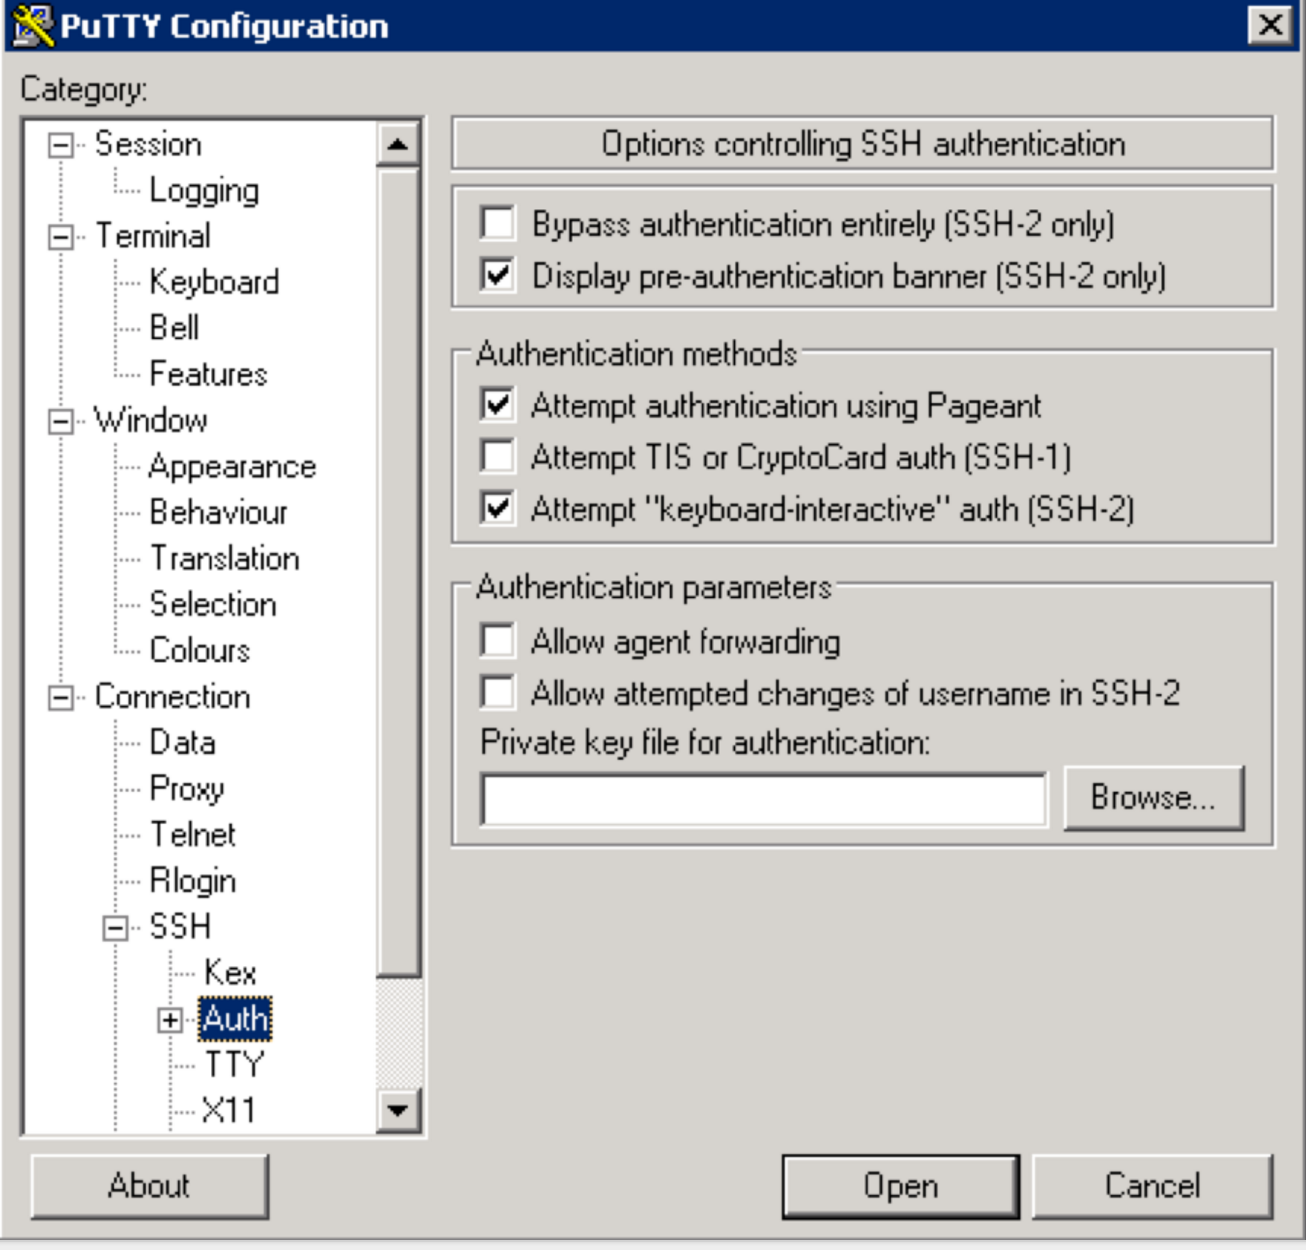 Security_Labs/HDP-2 6-MITKDC md at master